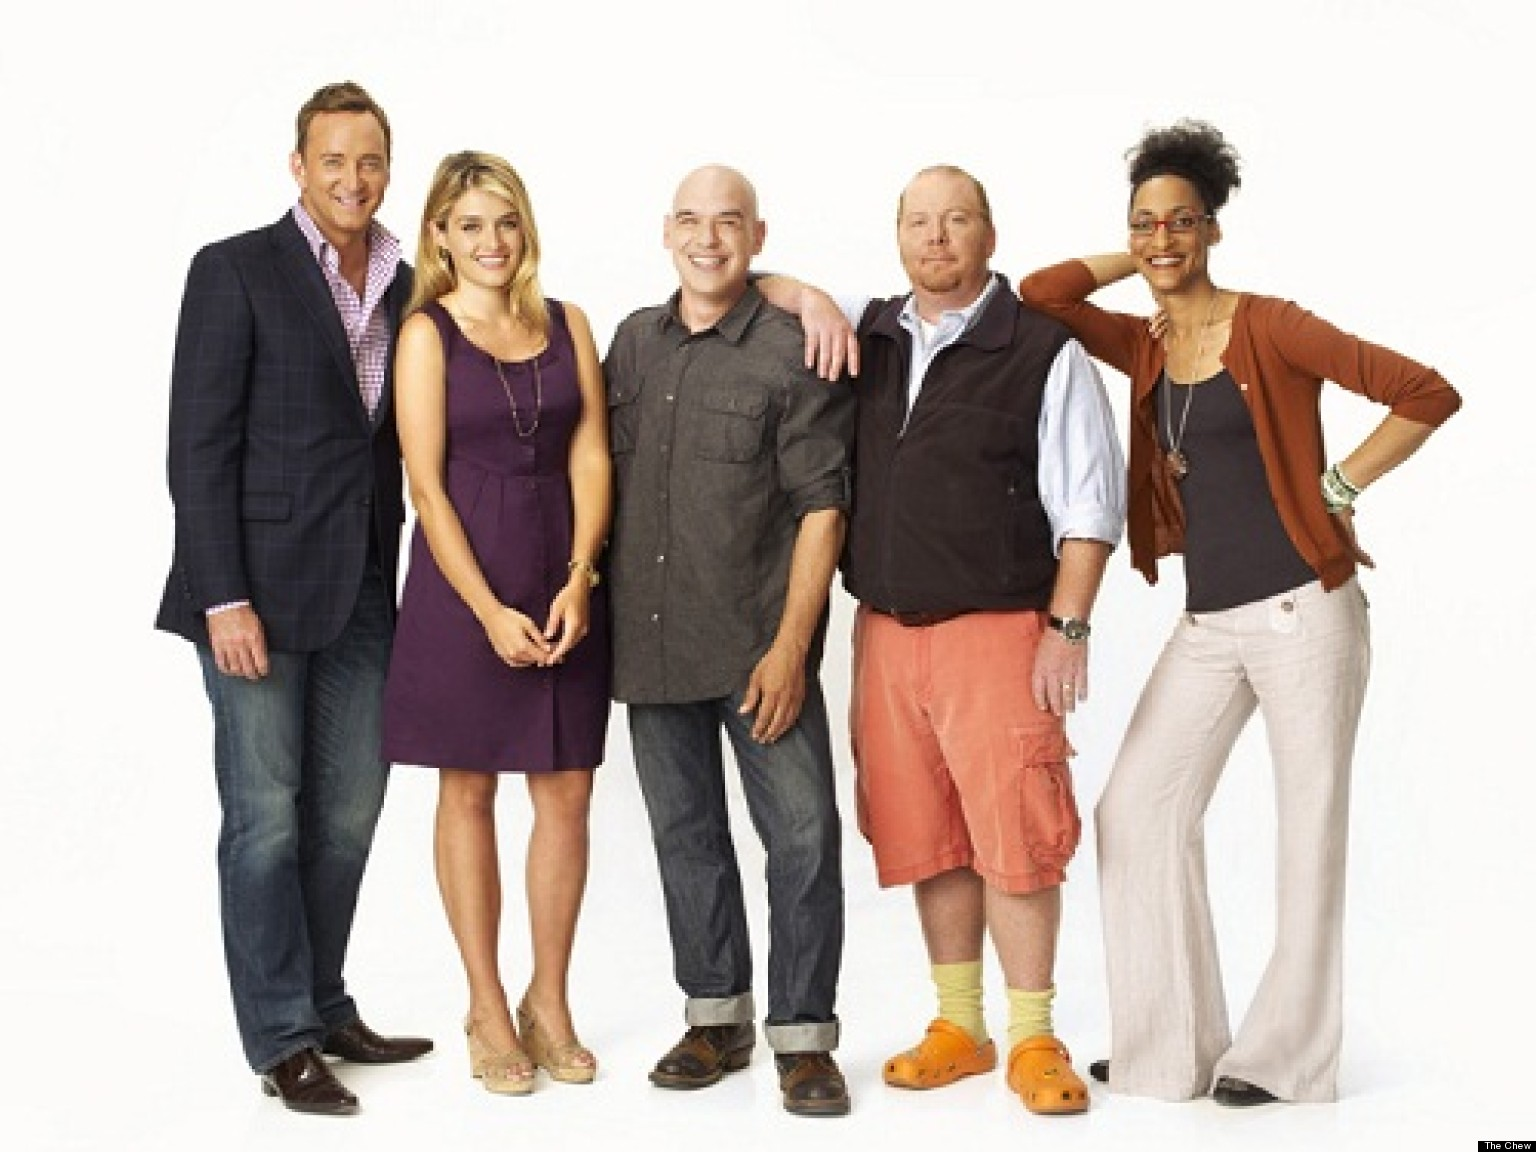 The Chew Cast the chew': one year in for abc's daytime food show | huffpost